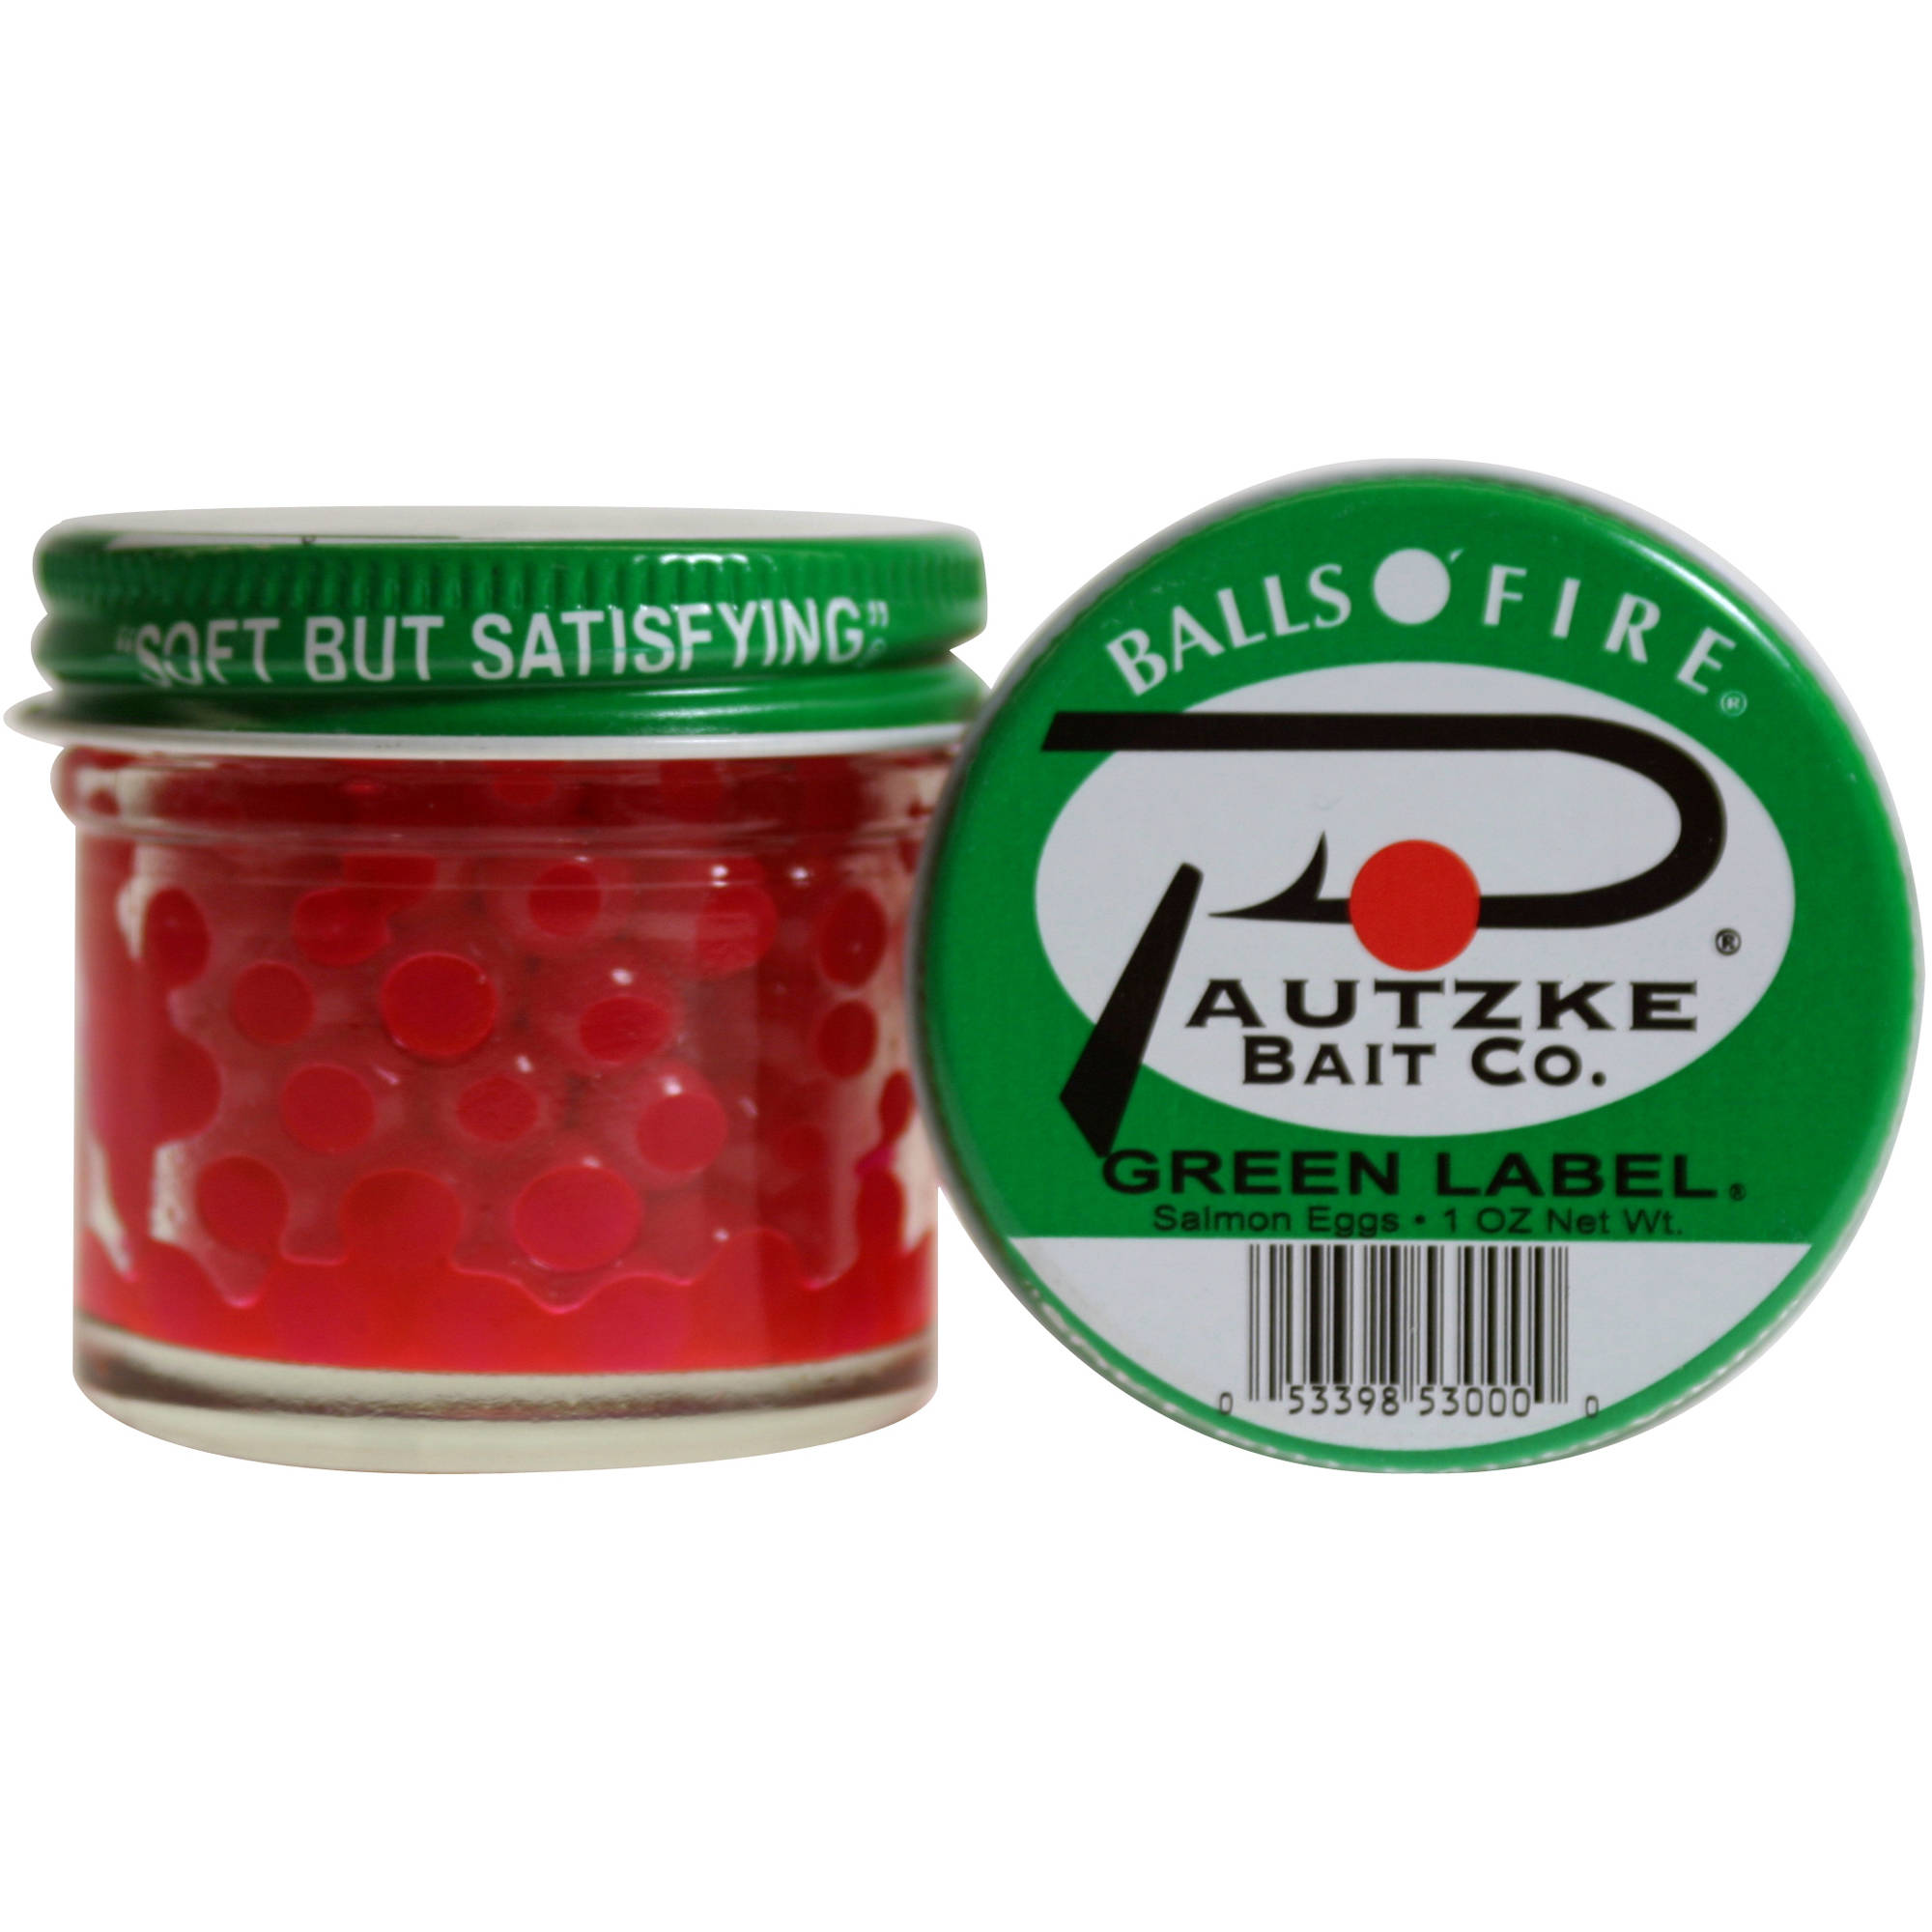 Pautzke Green Label Salmon Eggs, 1 oz